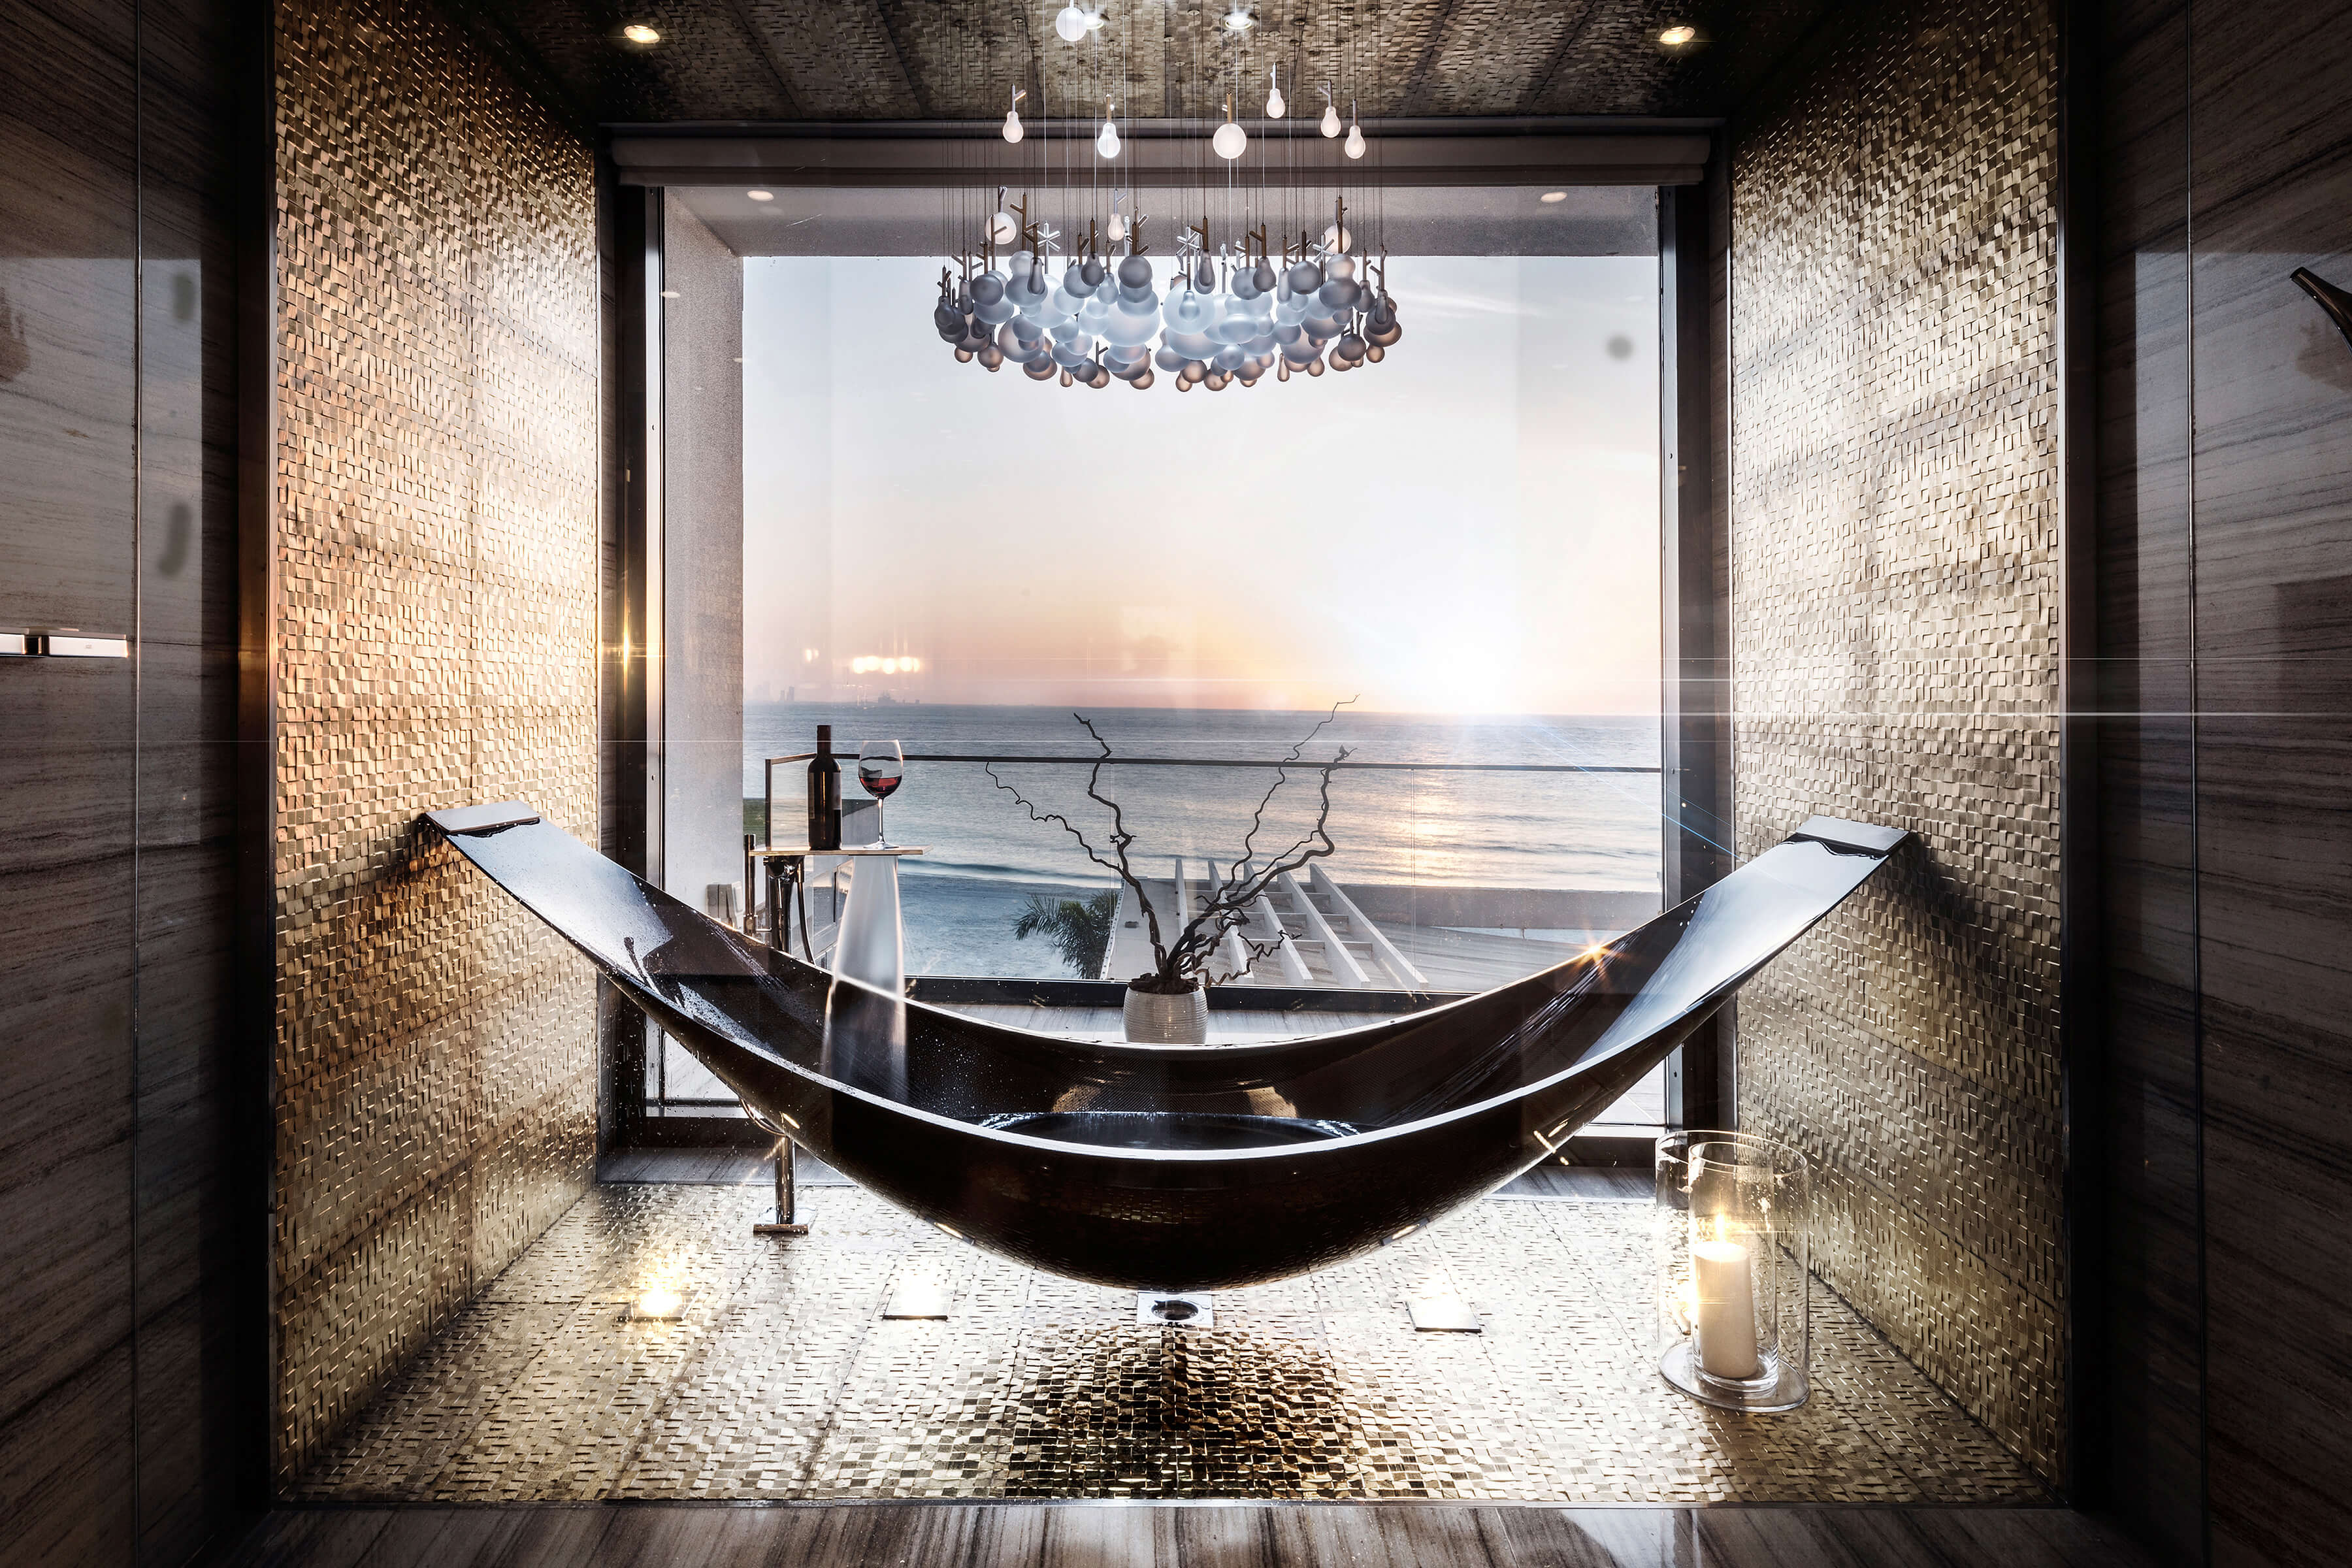 Black hammock bath in luxury hotel bathroom with sea view and a chandelier